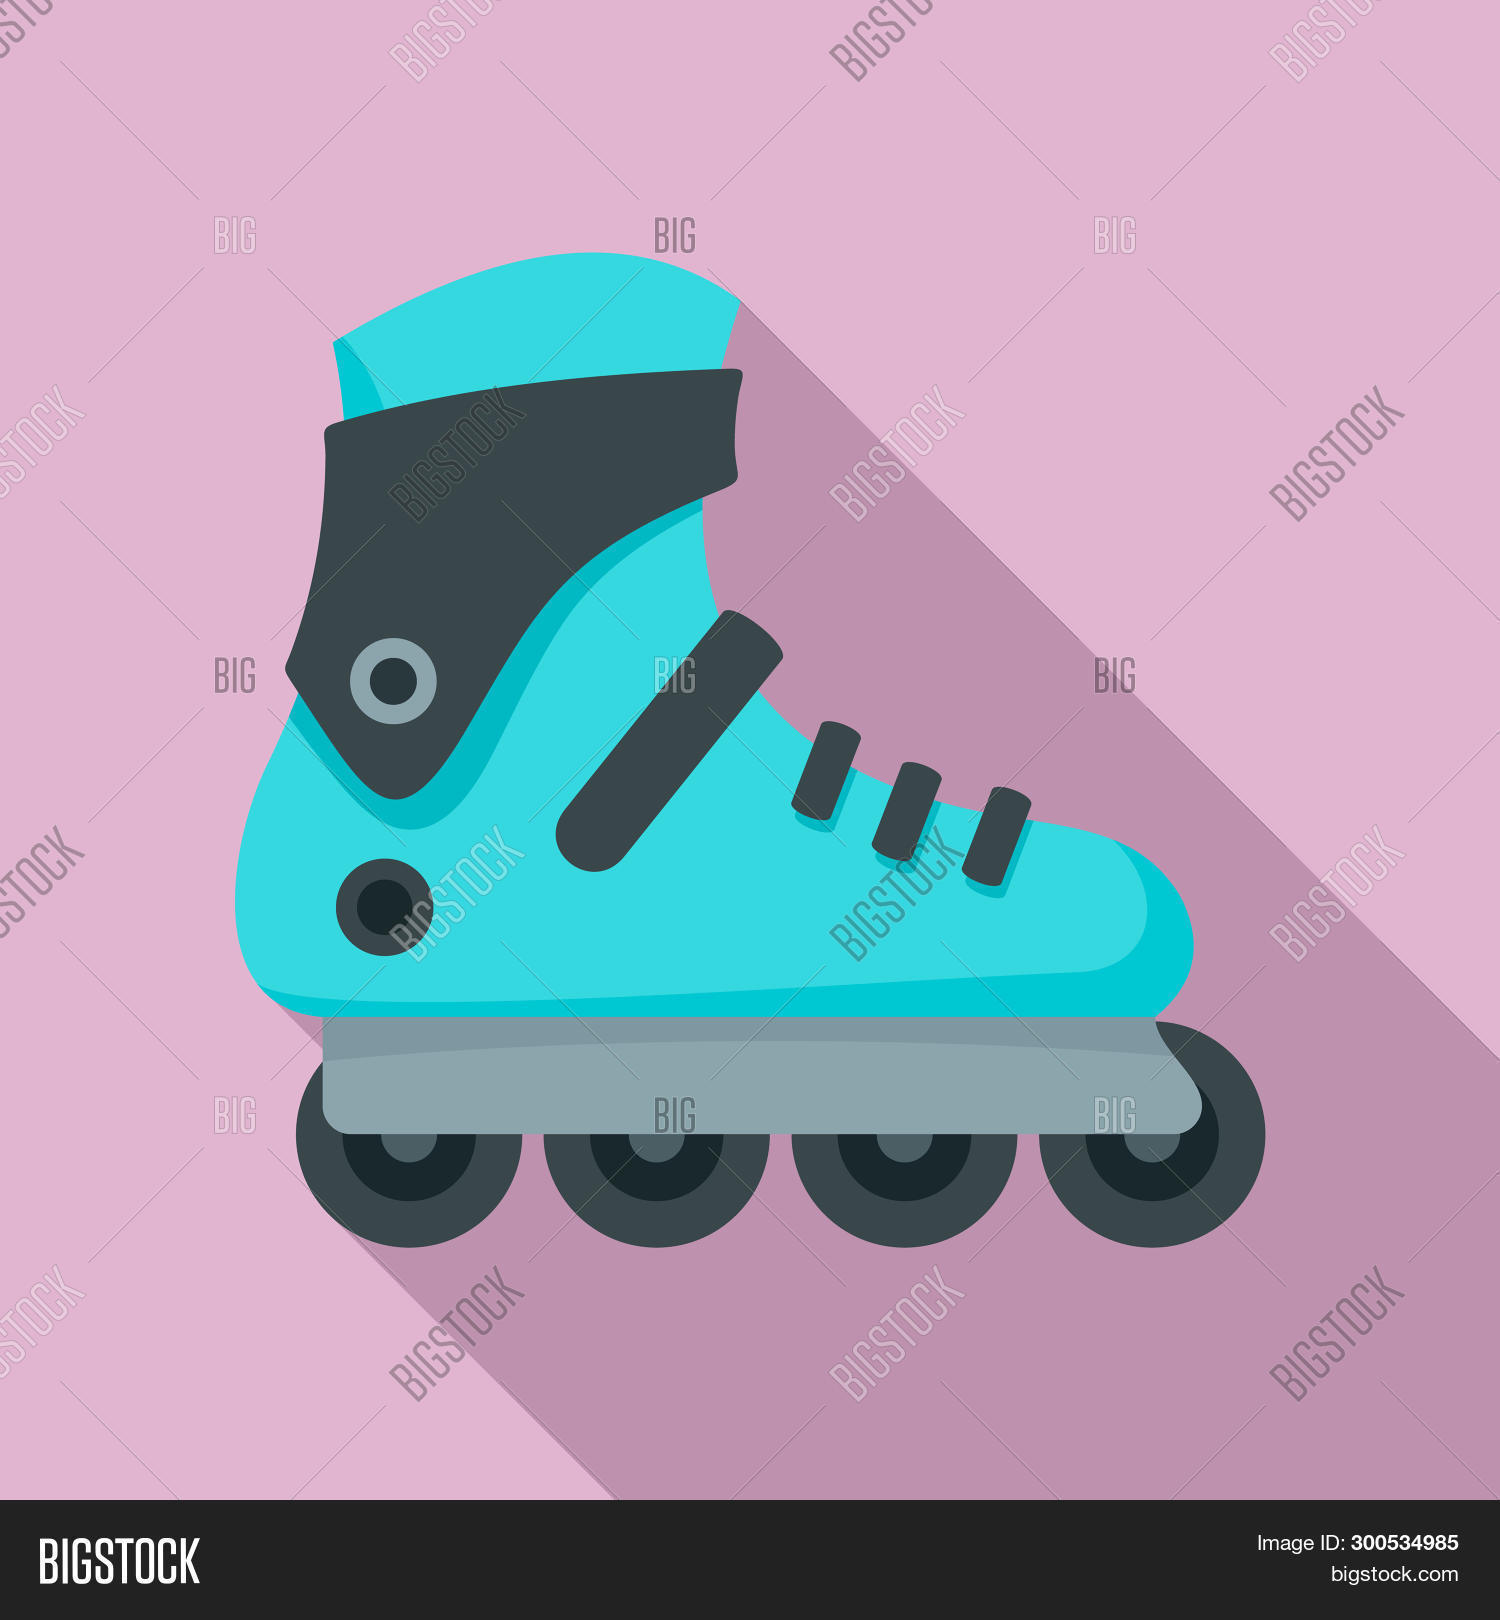 accessories,action,activity,art,boot,brake,casters,child,childhood,design,detailed,equipment,extreme,fitness,flat,footwear,fun,glide,graphic,hobby,icon,illustration,image,inlane,inline,kid,leisure,lifestyle,modern,pro,race,racing,retro,roll,roller,rollerskate,shoe,sideways,silhouette,skate,skating,sport,summer,urban,vintage,wheel,white